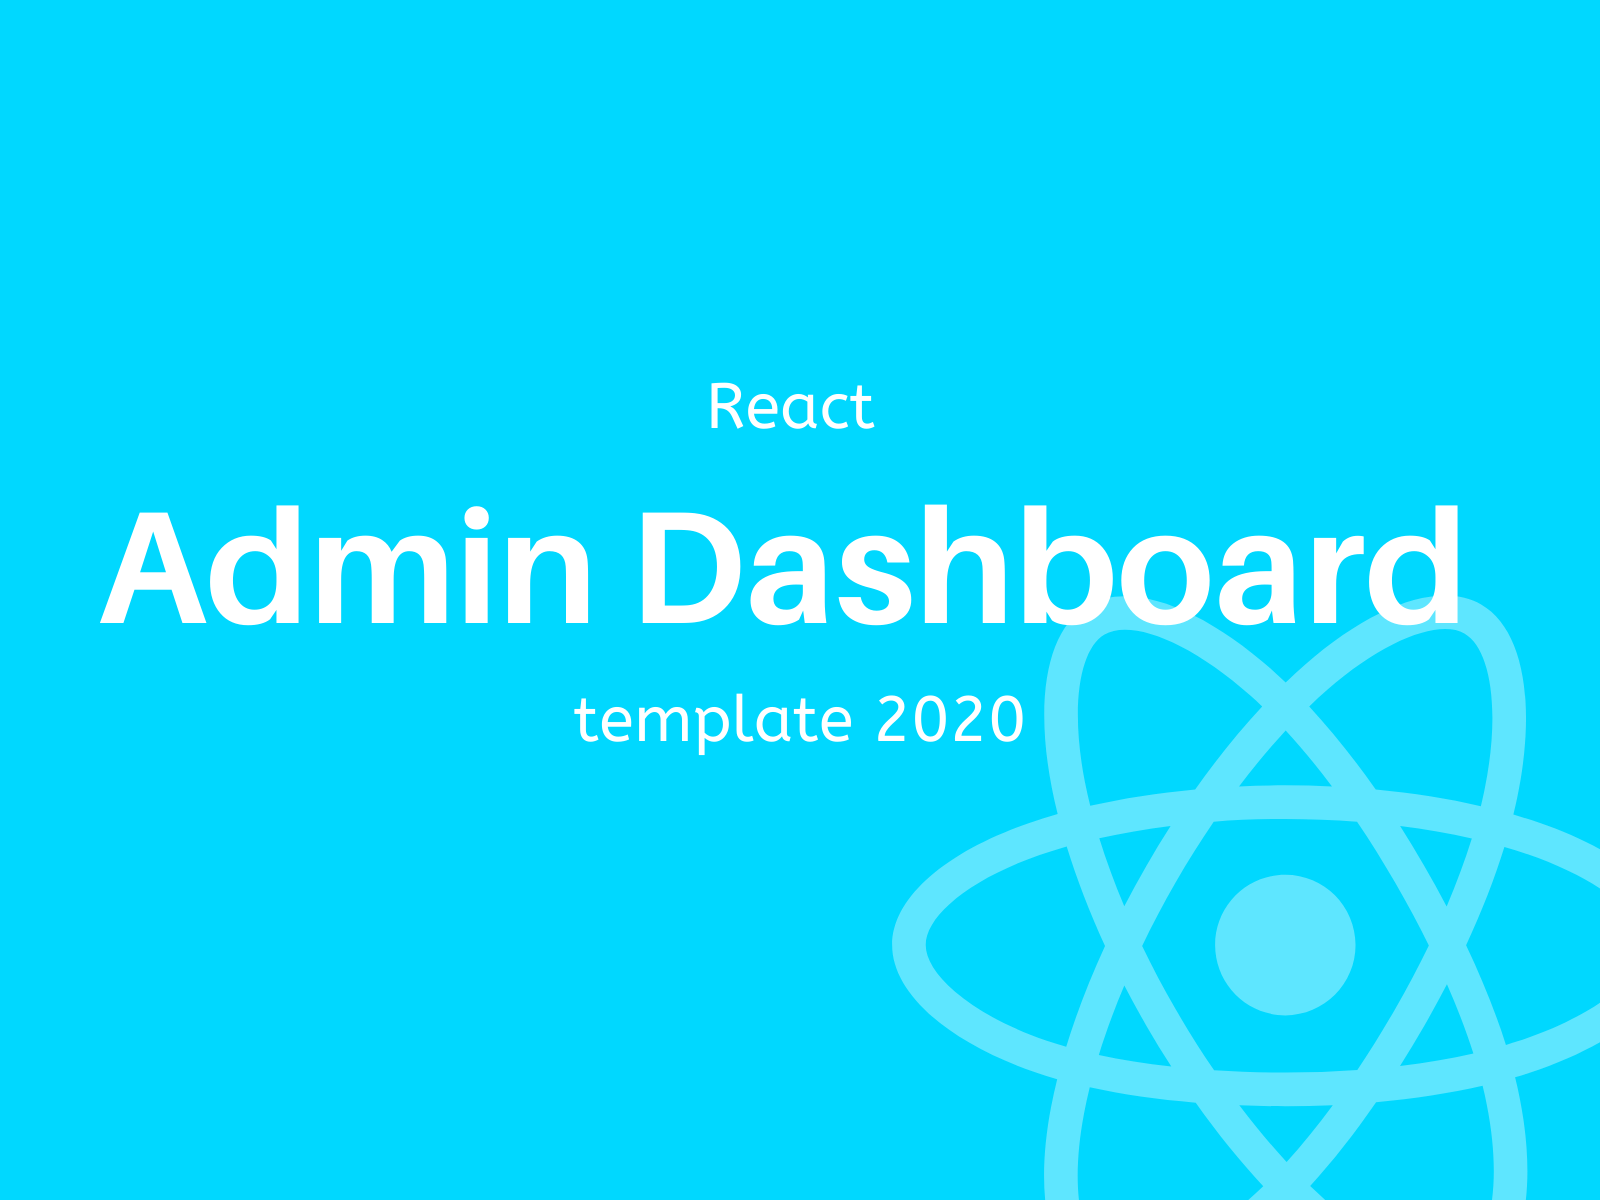 Best react admin dashboard